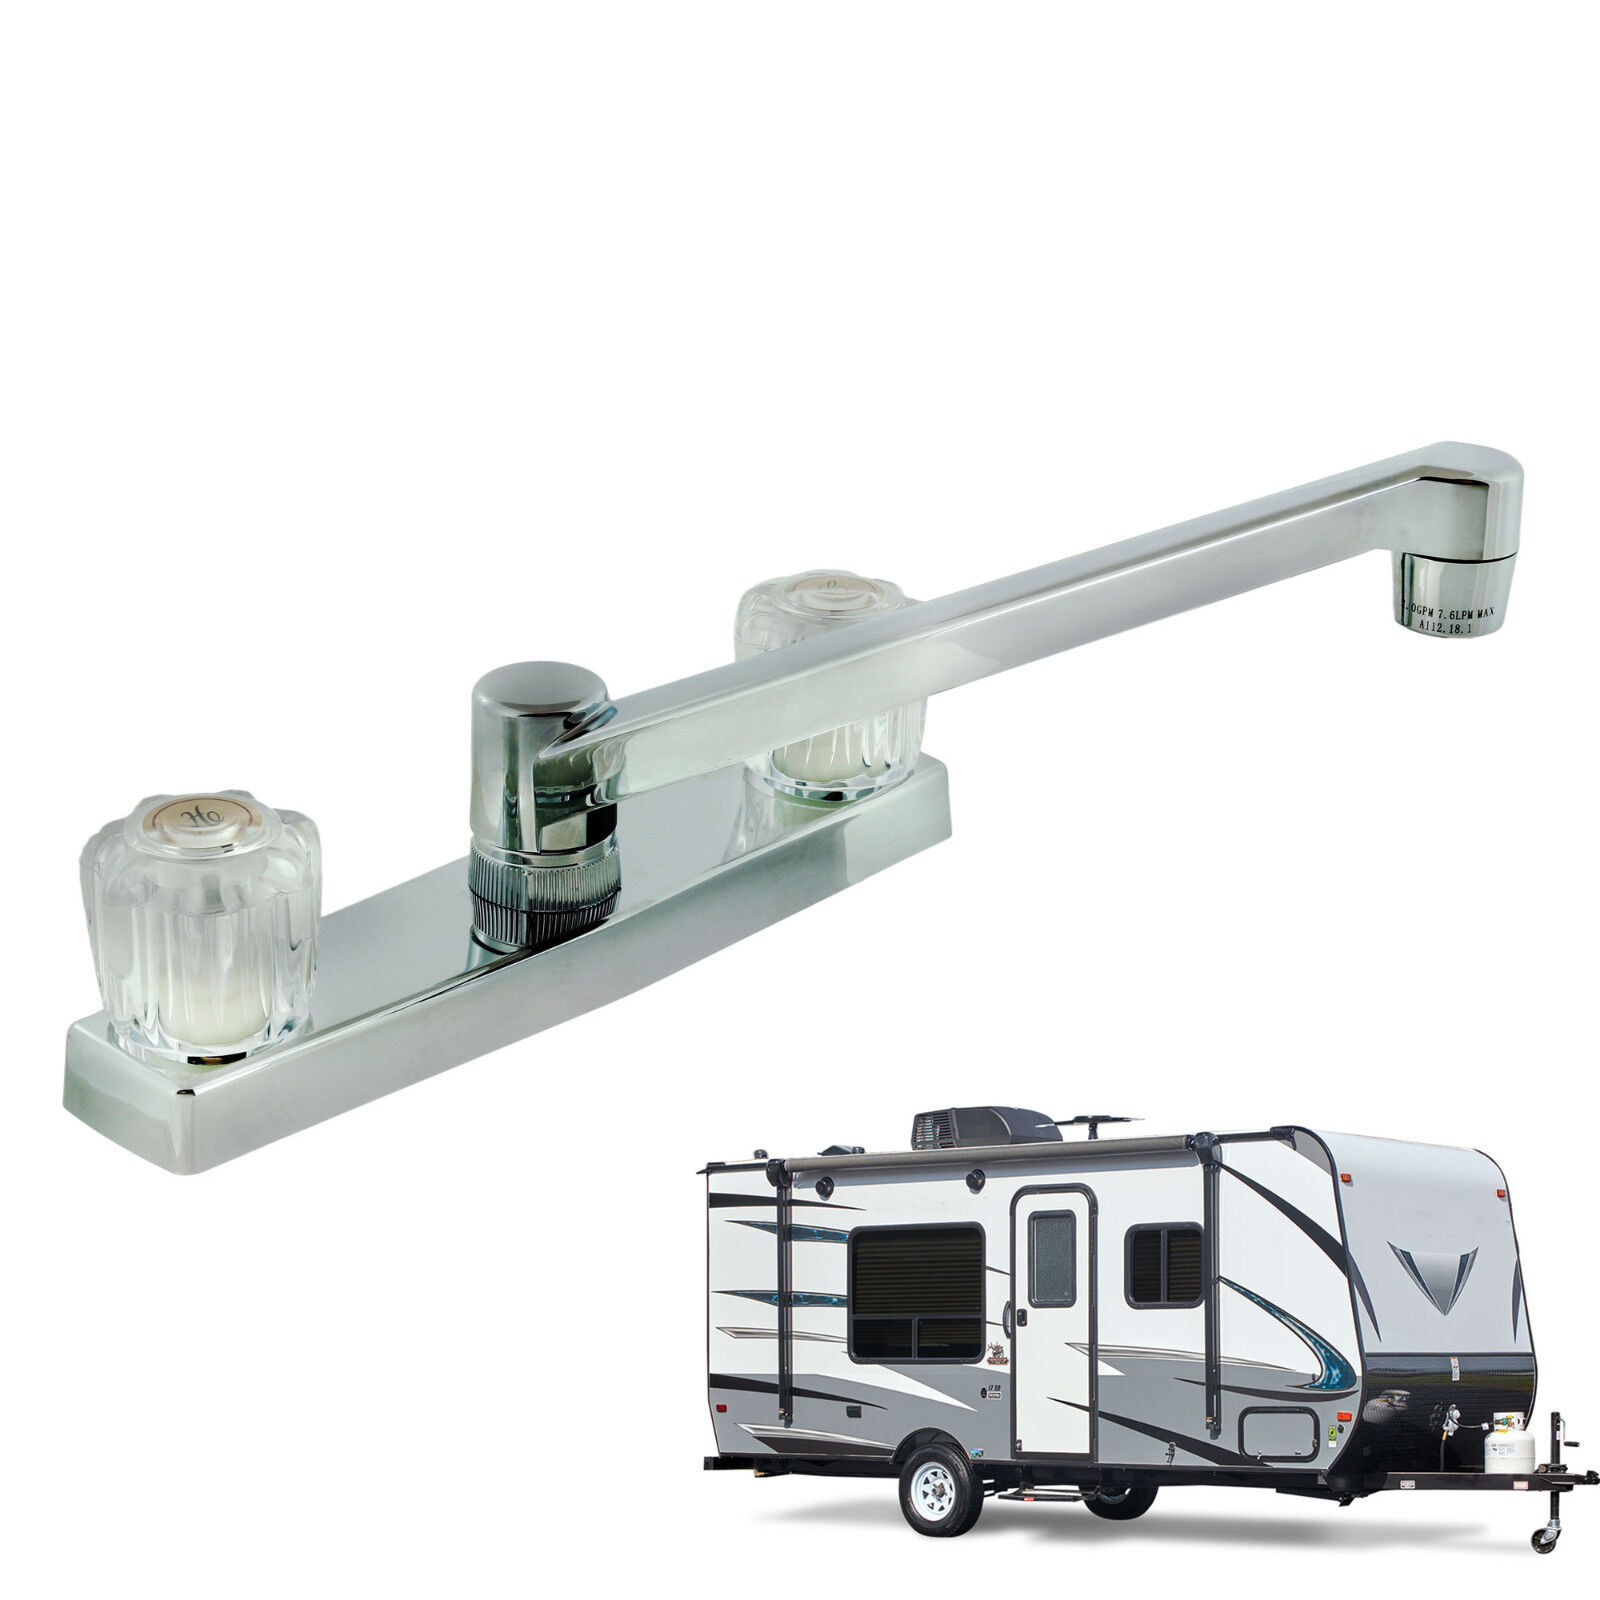 Two Handle RV Kitchen Faucet with Crystal Acrylic Knobs, Polished Chrome Finish eBay Motors